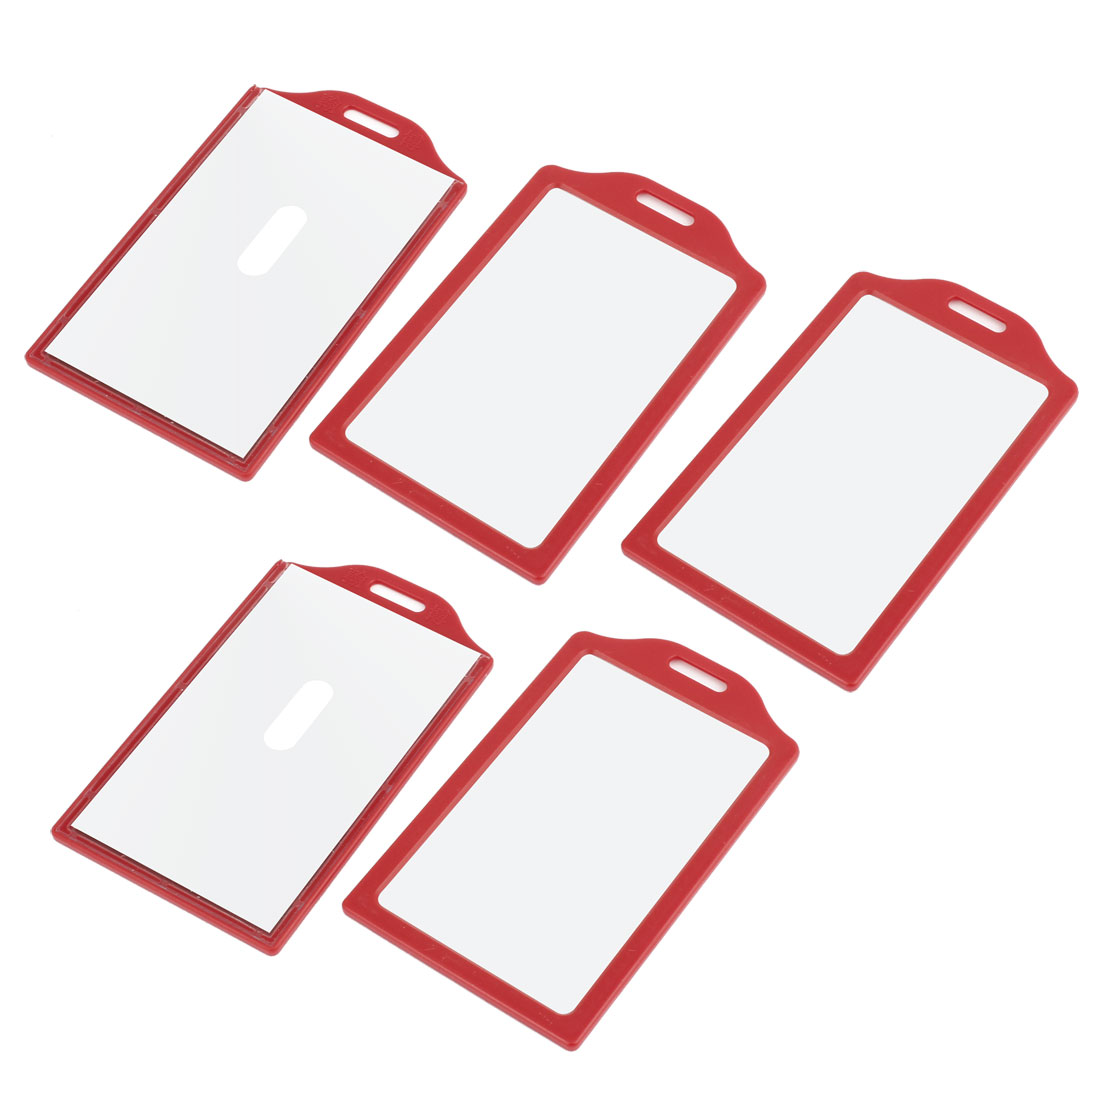 5 Pcs Portable Hole Luggage ID Name Label Card Protector Holder Red